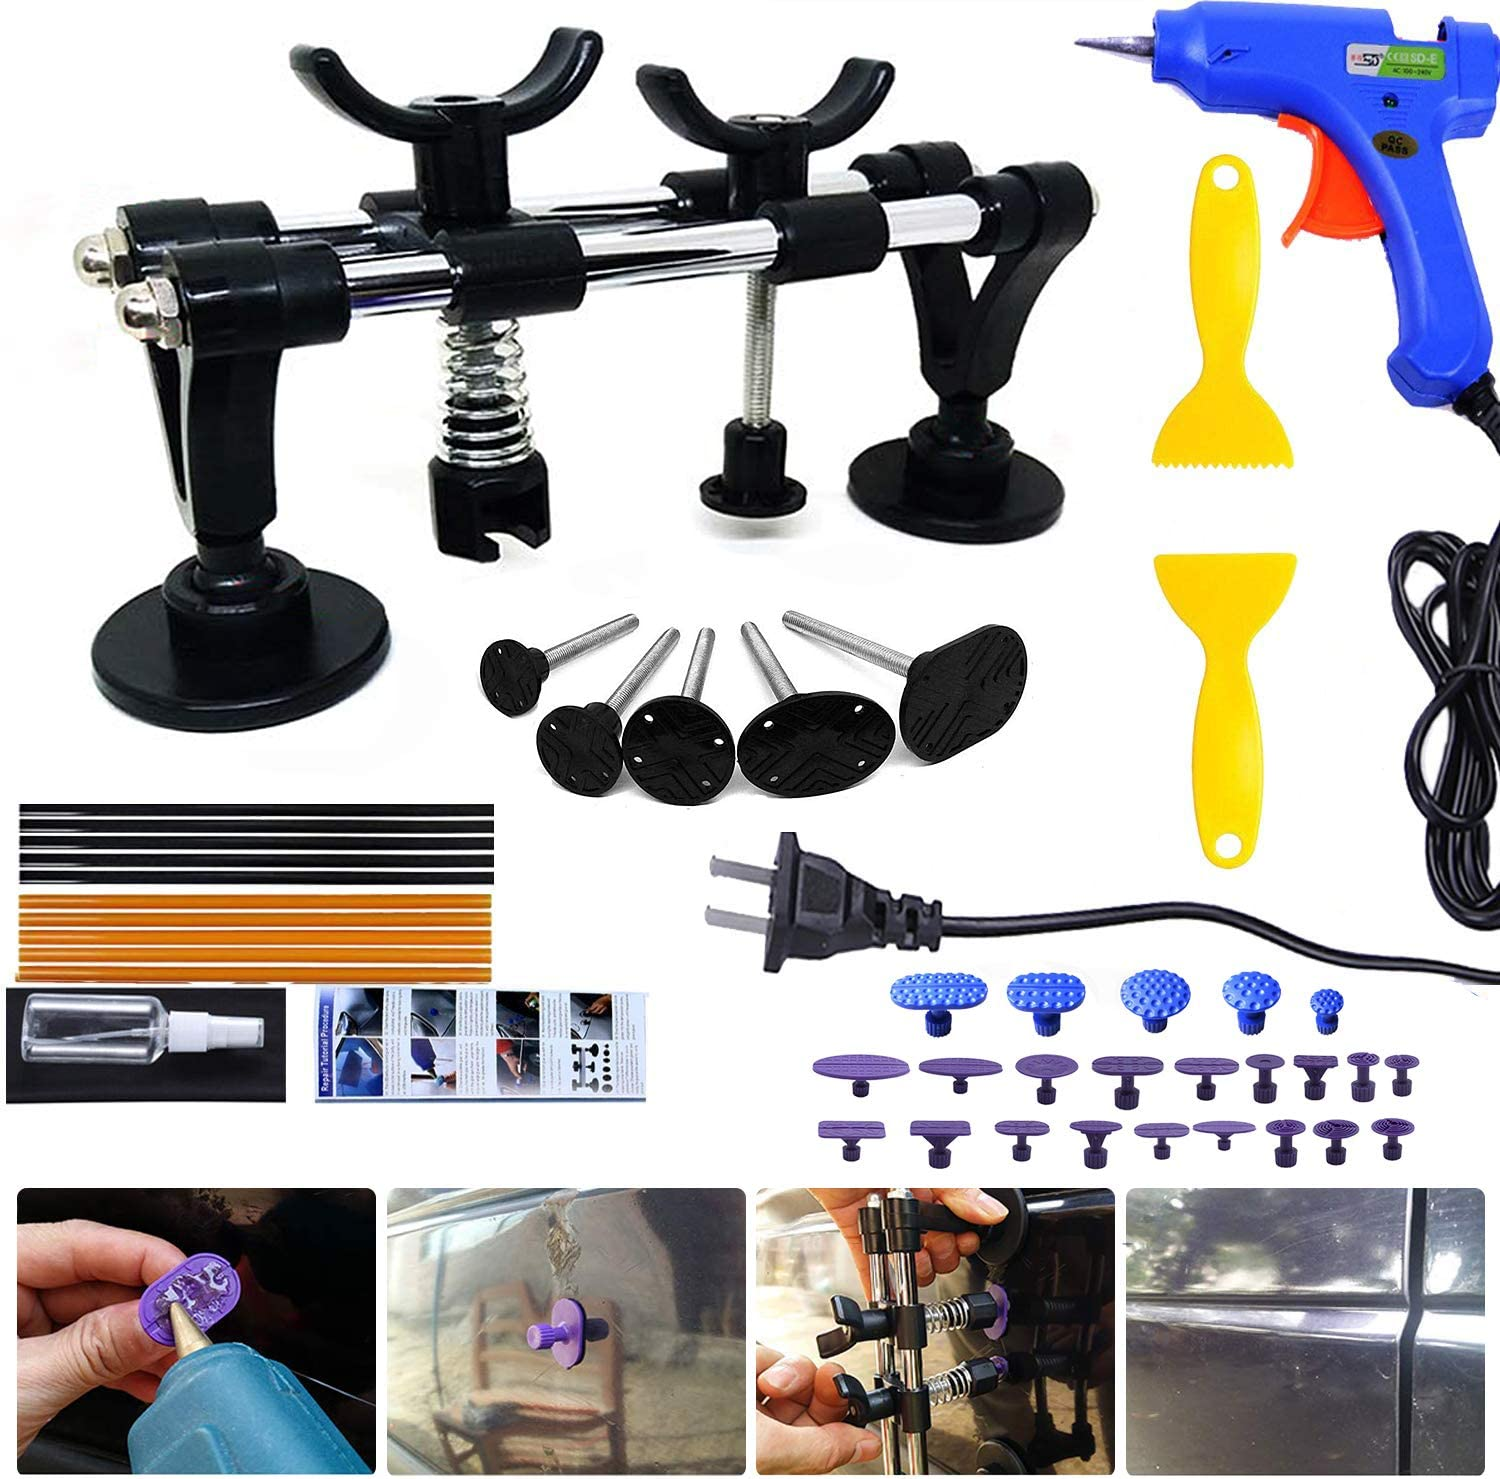 Auto Body Dent Repair Kit, PDR Car Dent Puller Auto Paintless Dent Removal Repair Tool Set Dent Lifter with Glue Gun, Glue Sticks, Glue Puller Tabs, Glue Shovel for Car Dent Remover and Hail Damage